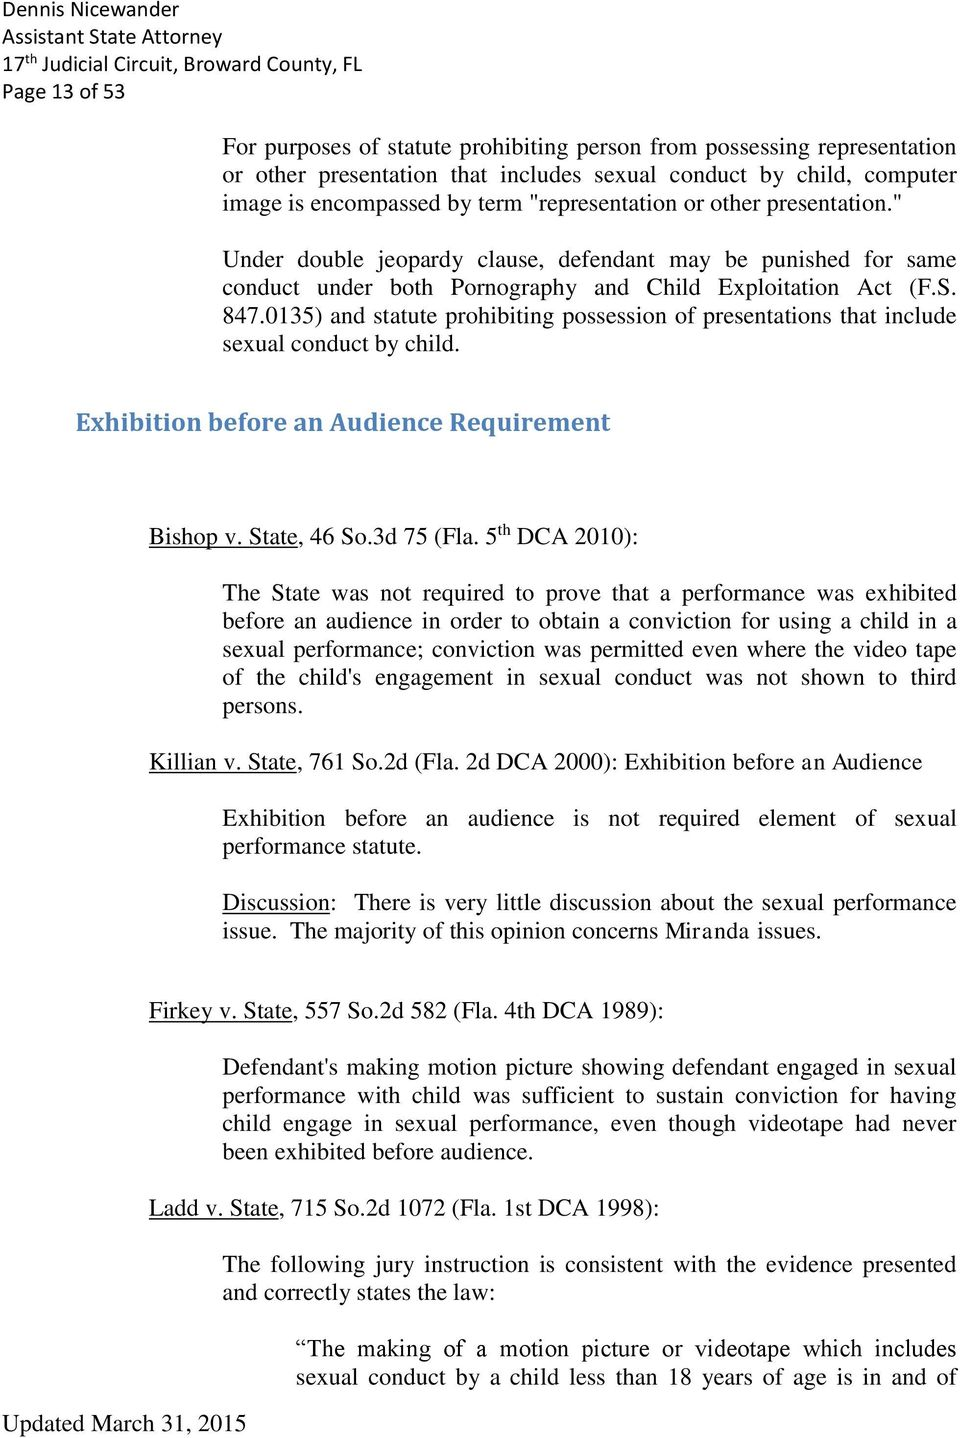 0135) and statute prohibiting possession of presentations that include sexual conduct by child. Exhibition before an Audience Requirement Bishop v. State, 46 So.3d 75 (Fla.